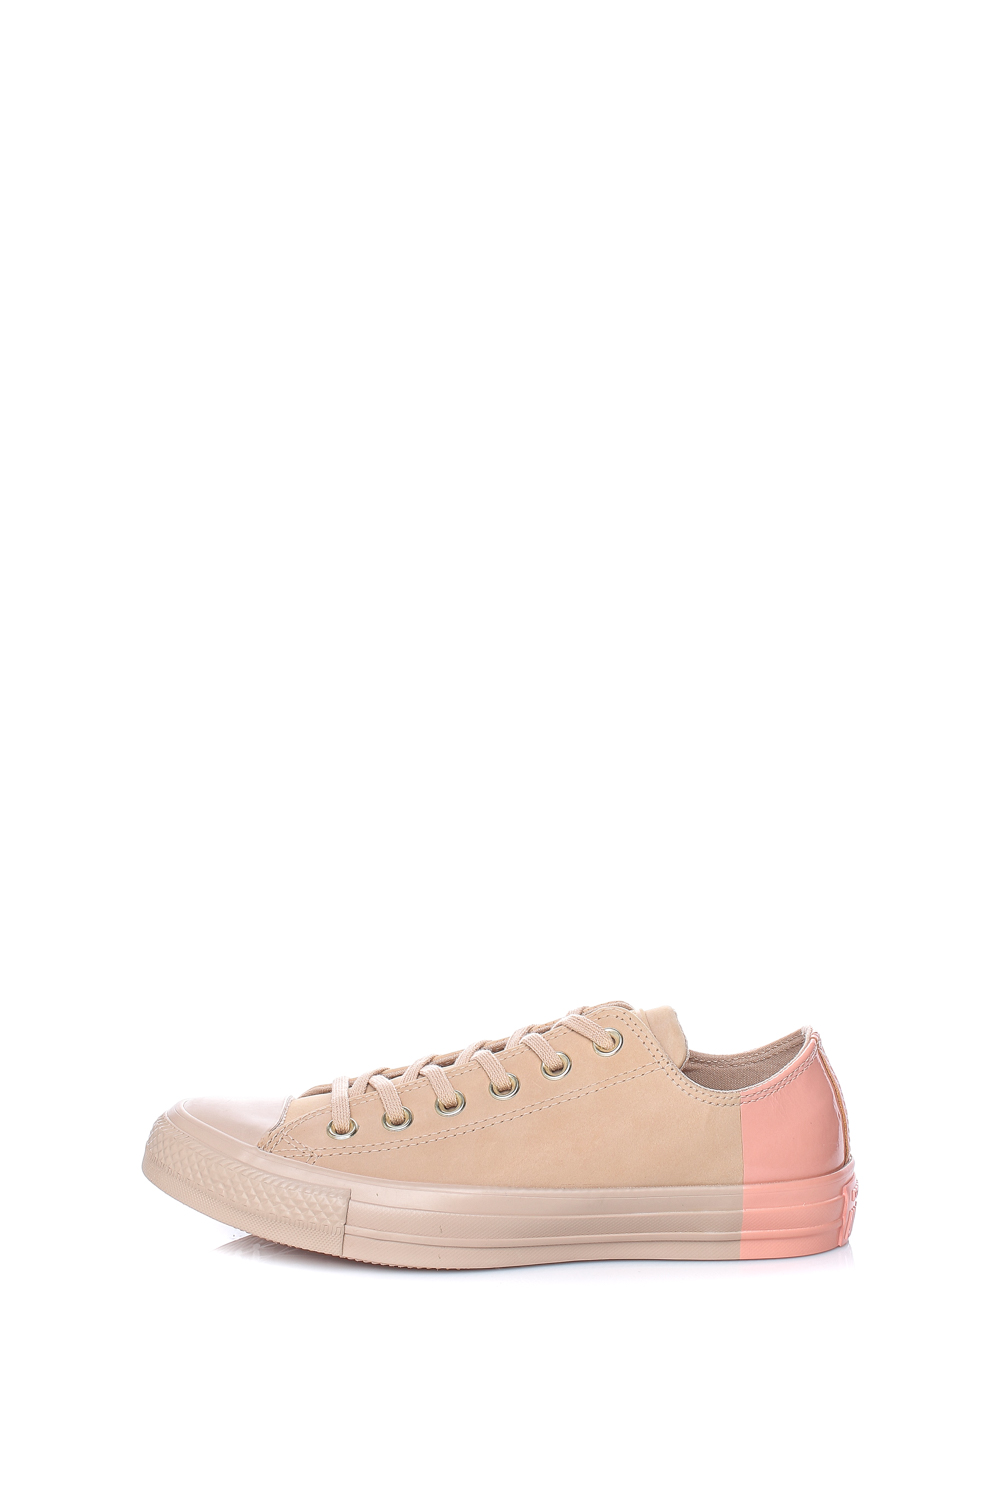 -50% Collective Online CONVERSE – Γυναικεία sneakers Converse Chuck Taylor  All Star Ox ροζ c6f950abf97